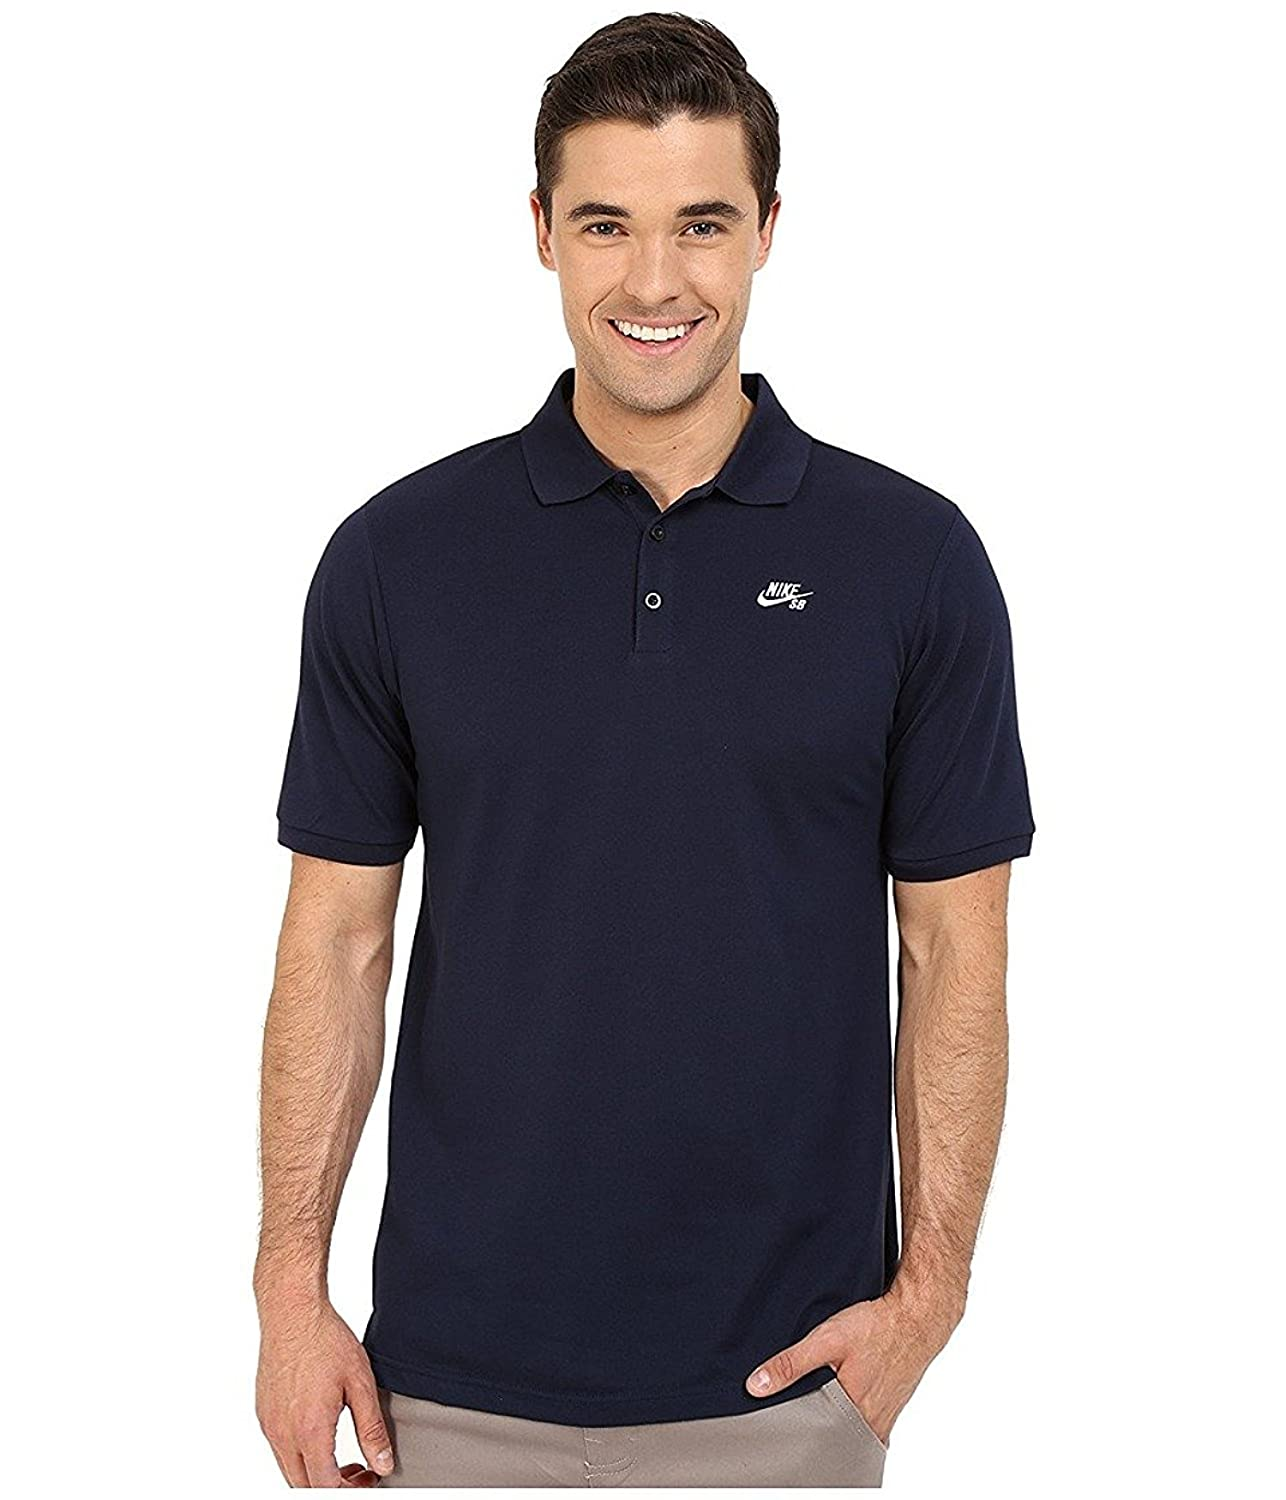 Nike SB Mens Dri-Fit Pique Polo Navy Blue